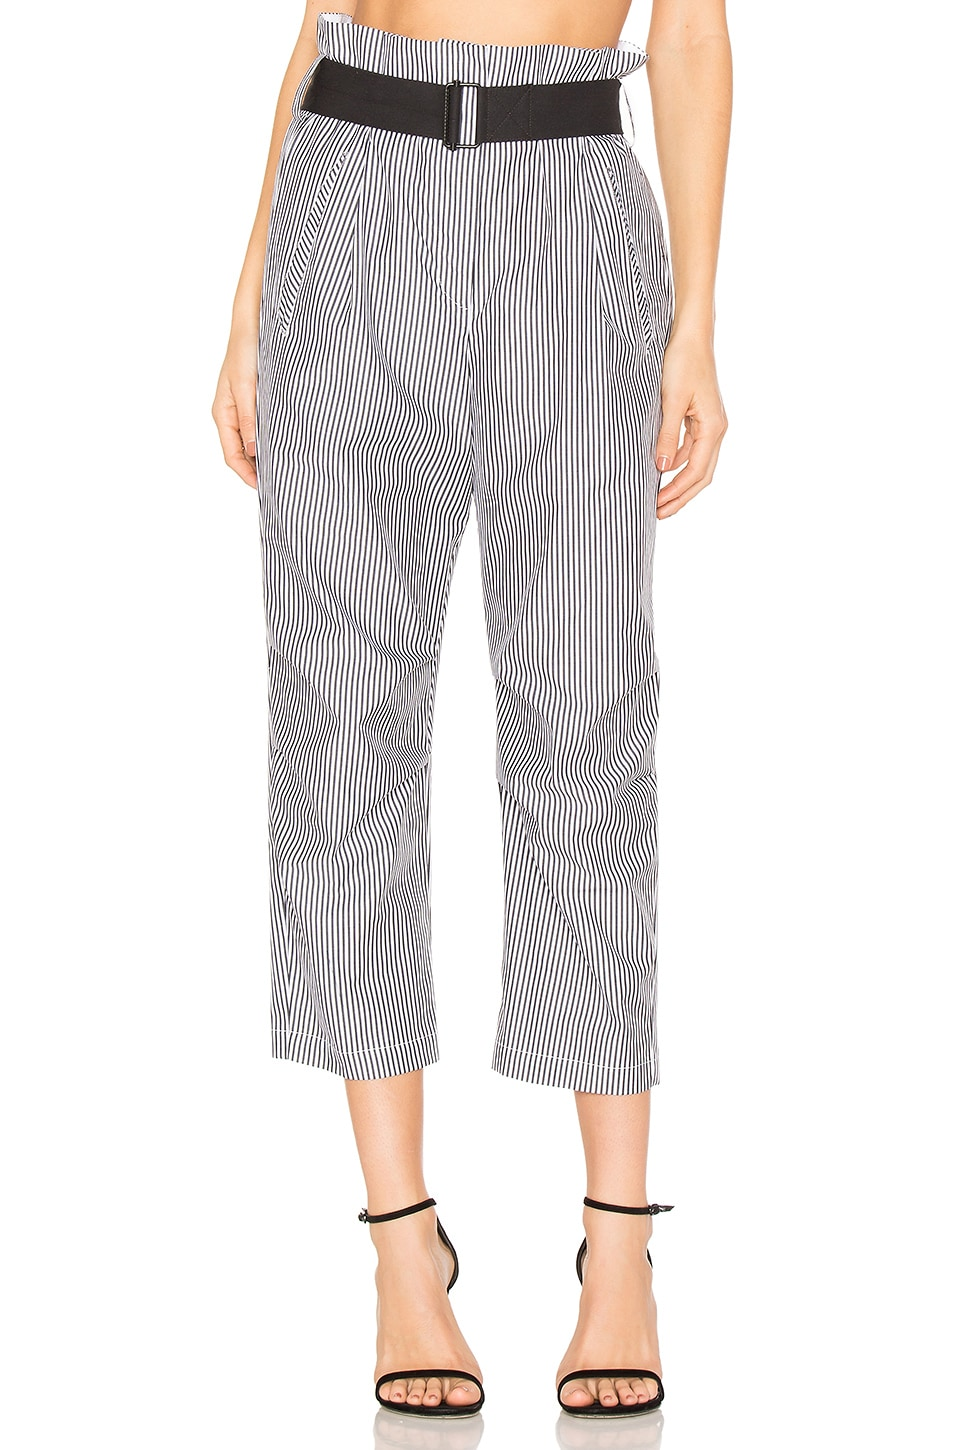 Bosworth Pant by Rag & Bone